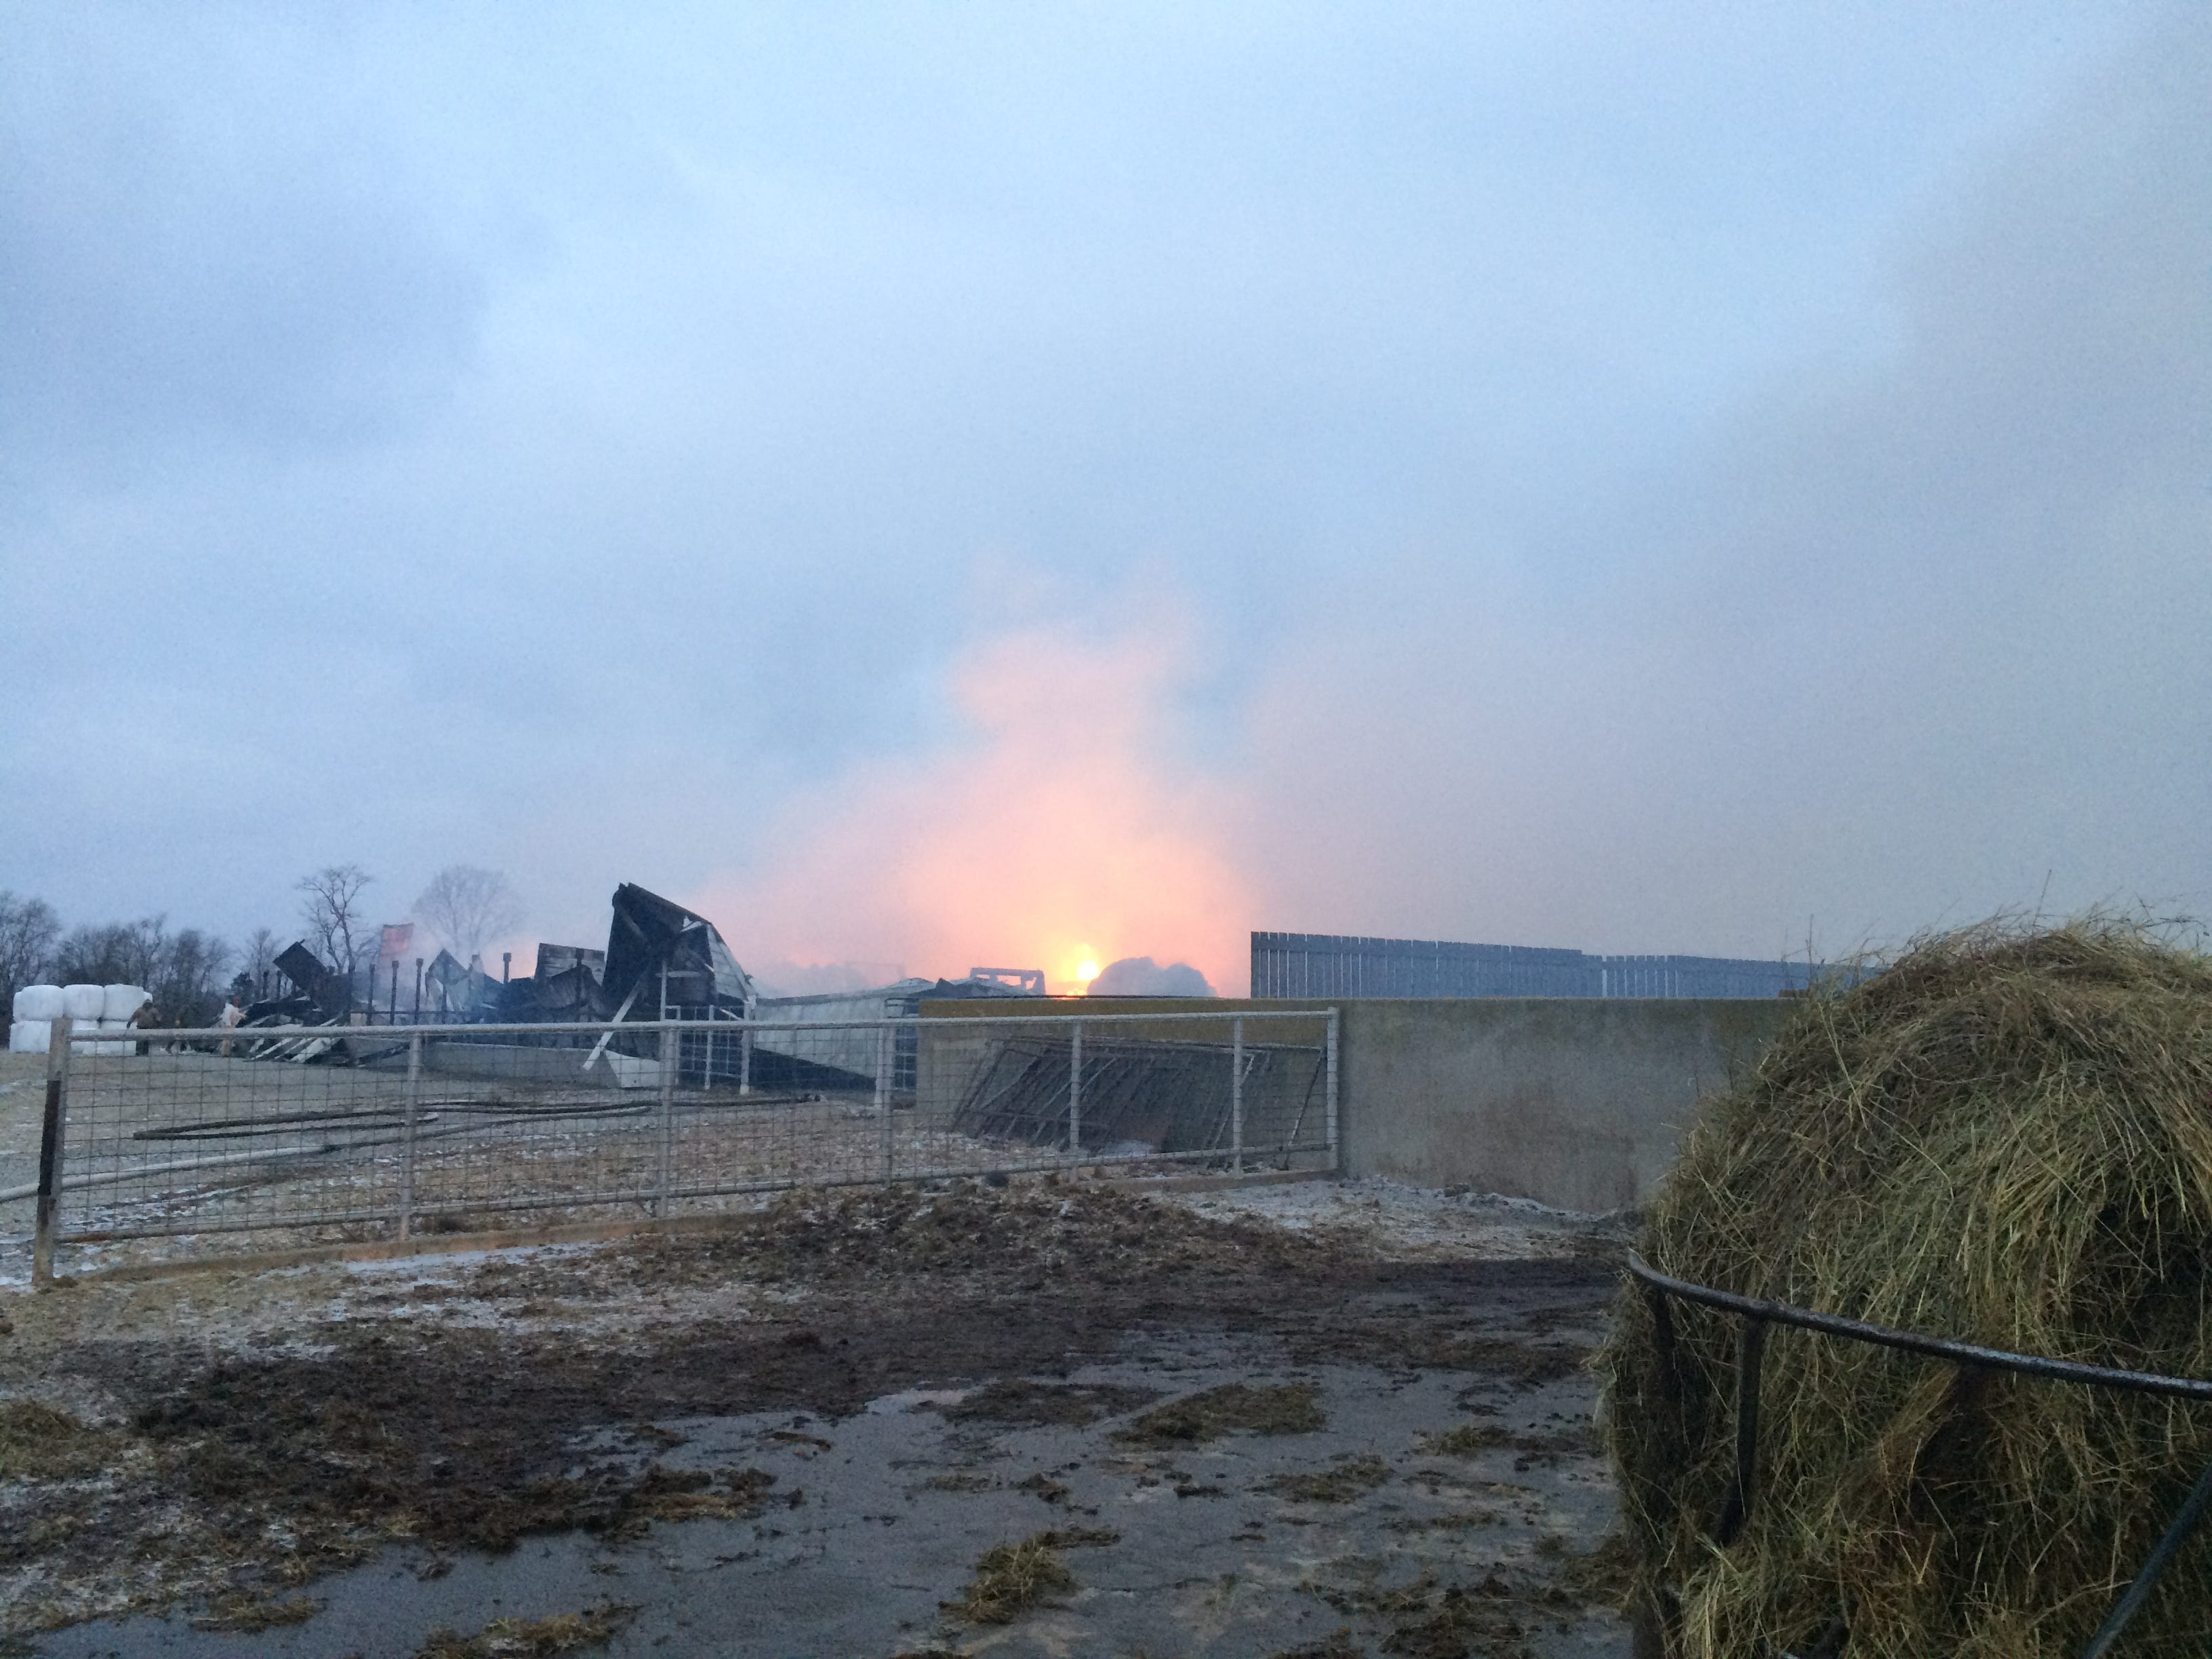 As dawn broke Wednesday remnants of a cattle barn continued burning at the Gerber farm across Ind. 227 from Richmond Municipal Airport.